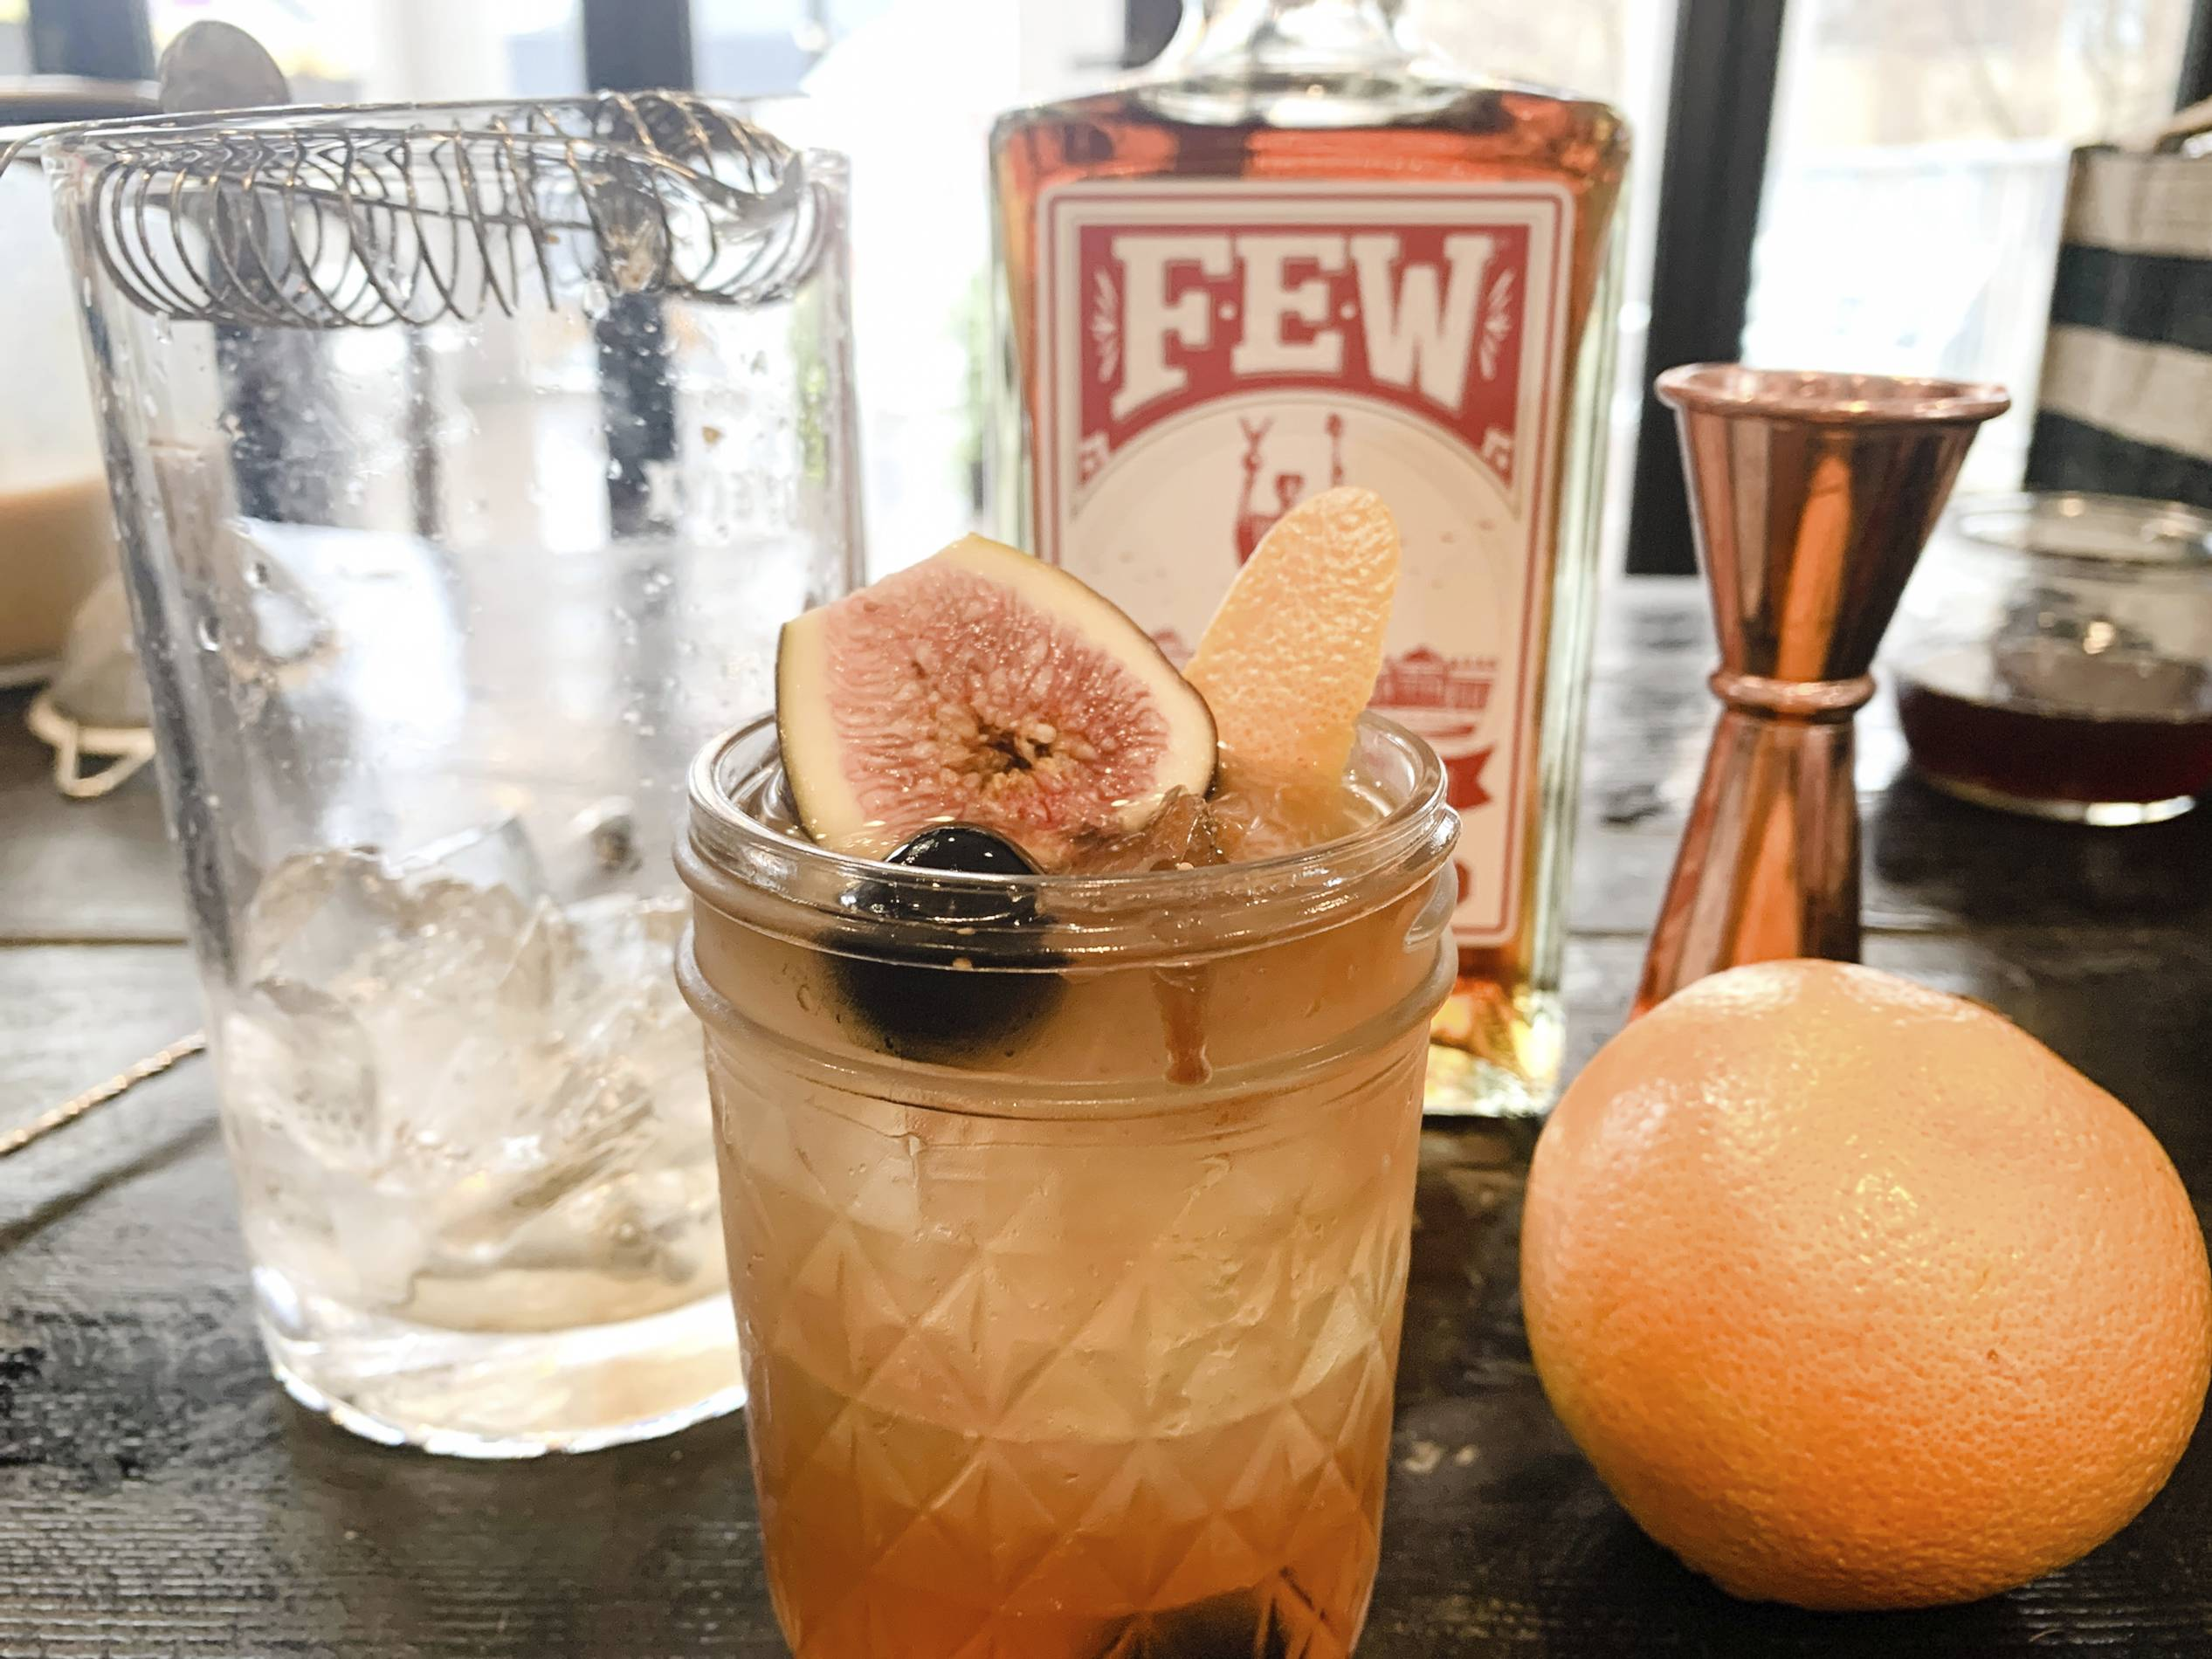 The_Goddess_and_Grocer_Fig_Old_Fashioned.JPG